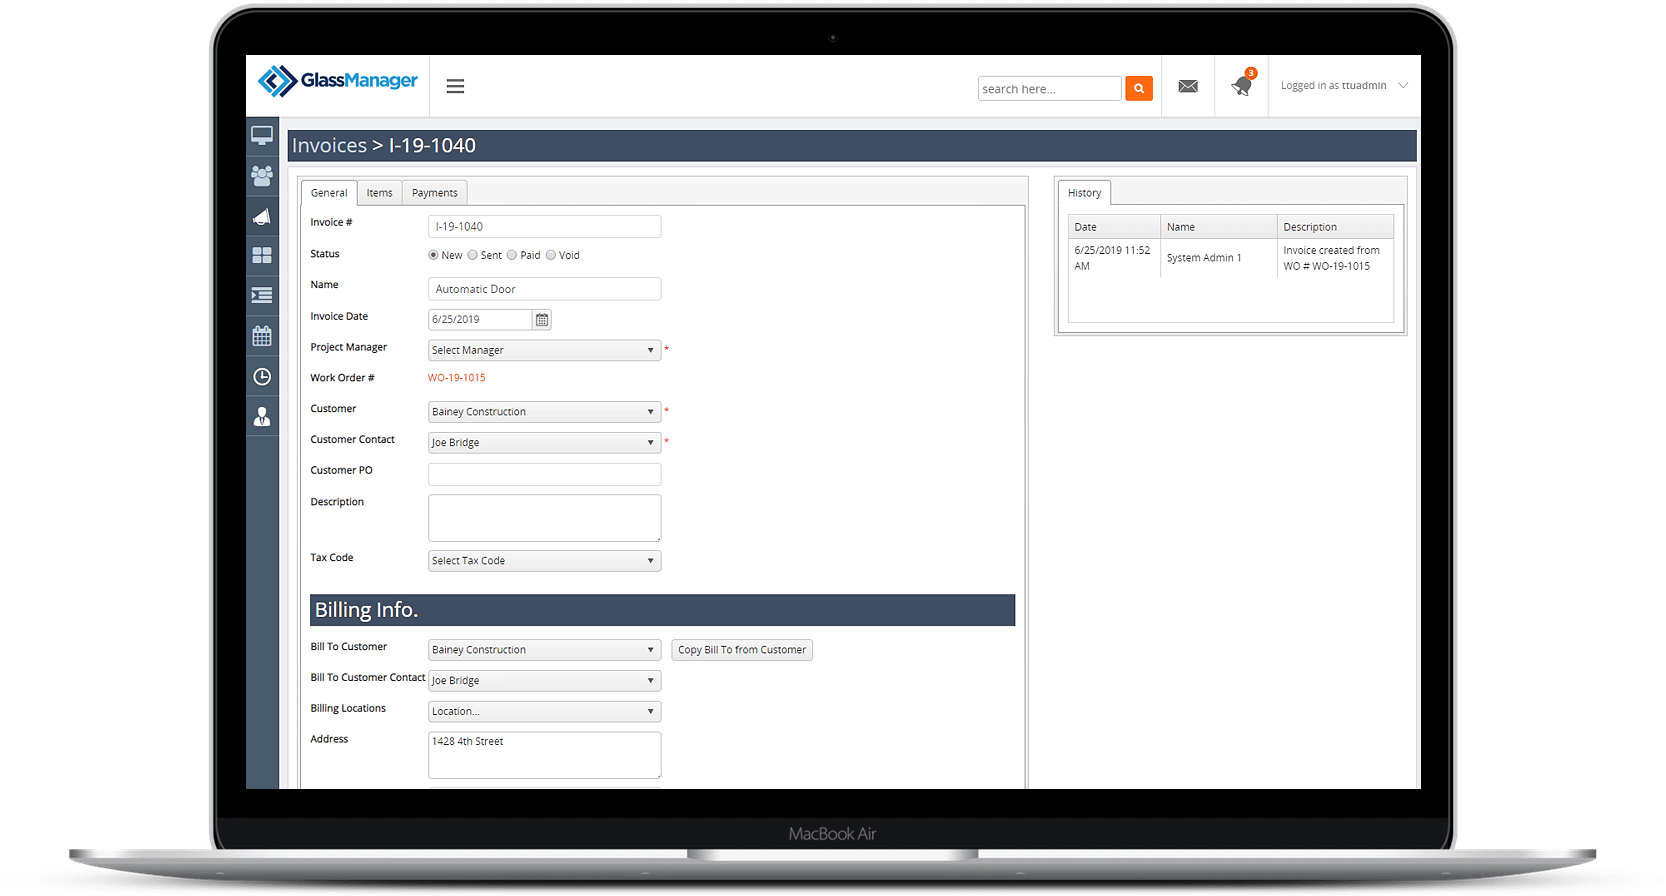 invoicing section of GlassManager Bsuiness Management Software